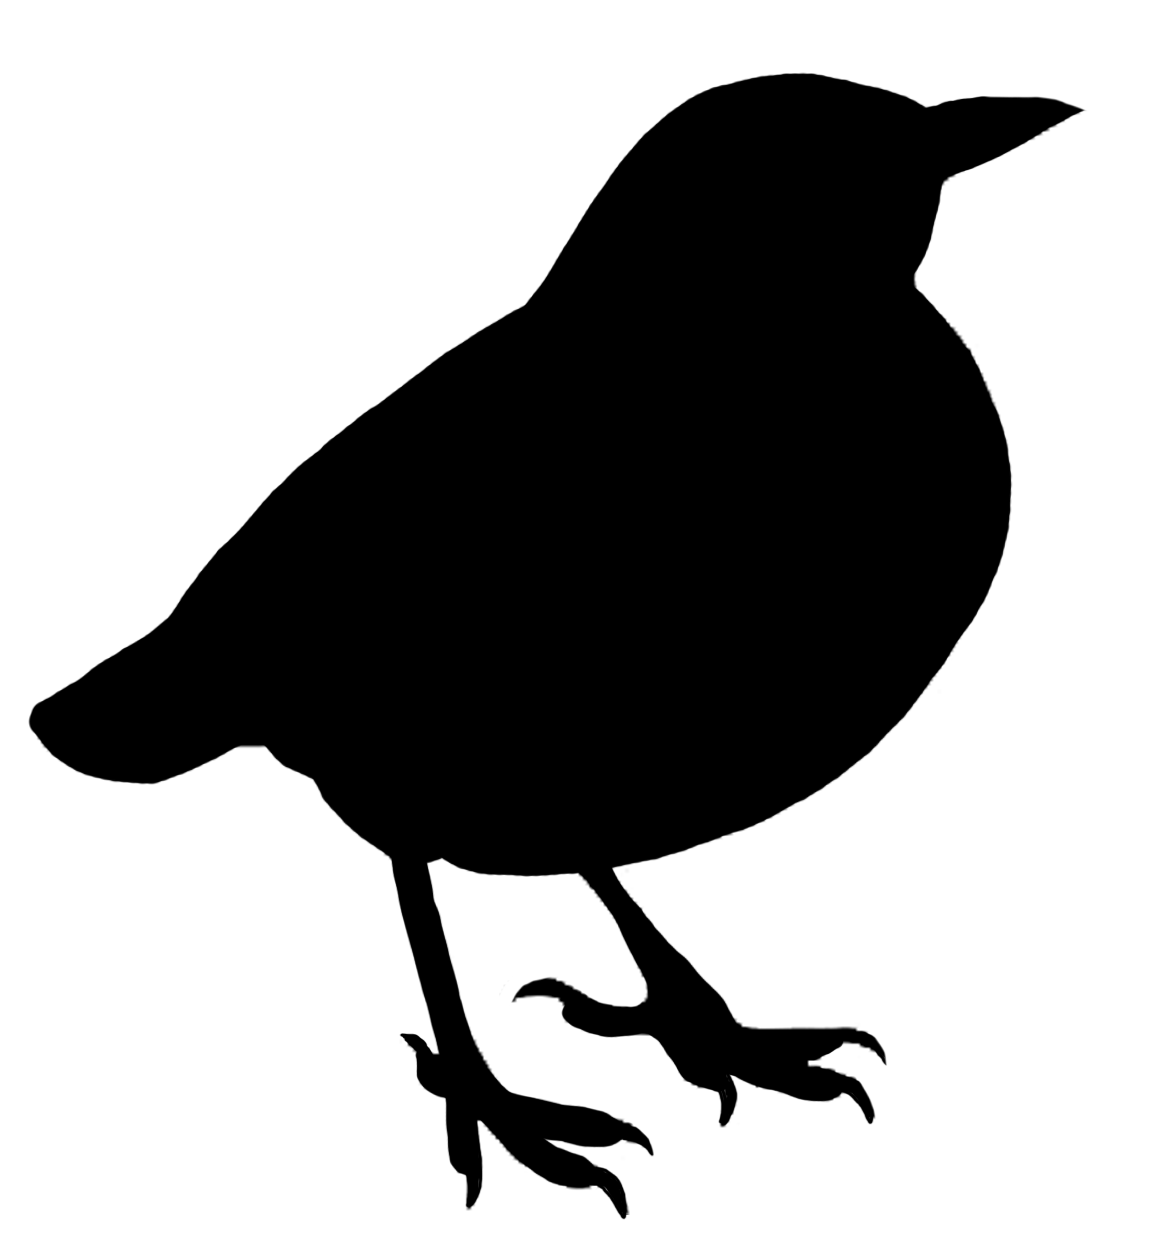 1156x1256 Vector Cawing Raven, Silhouette Of The Crow Standing.